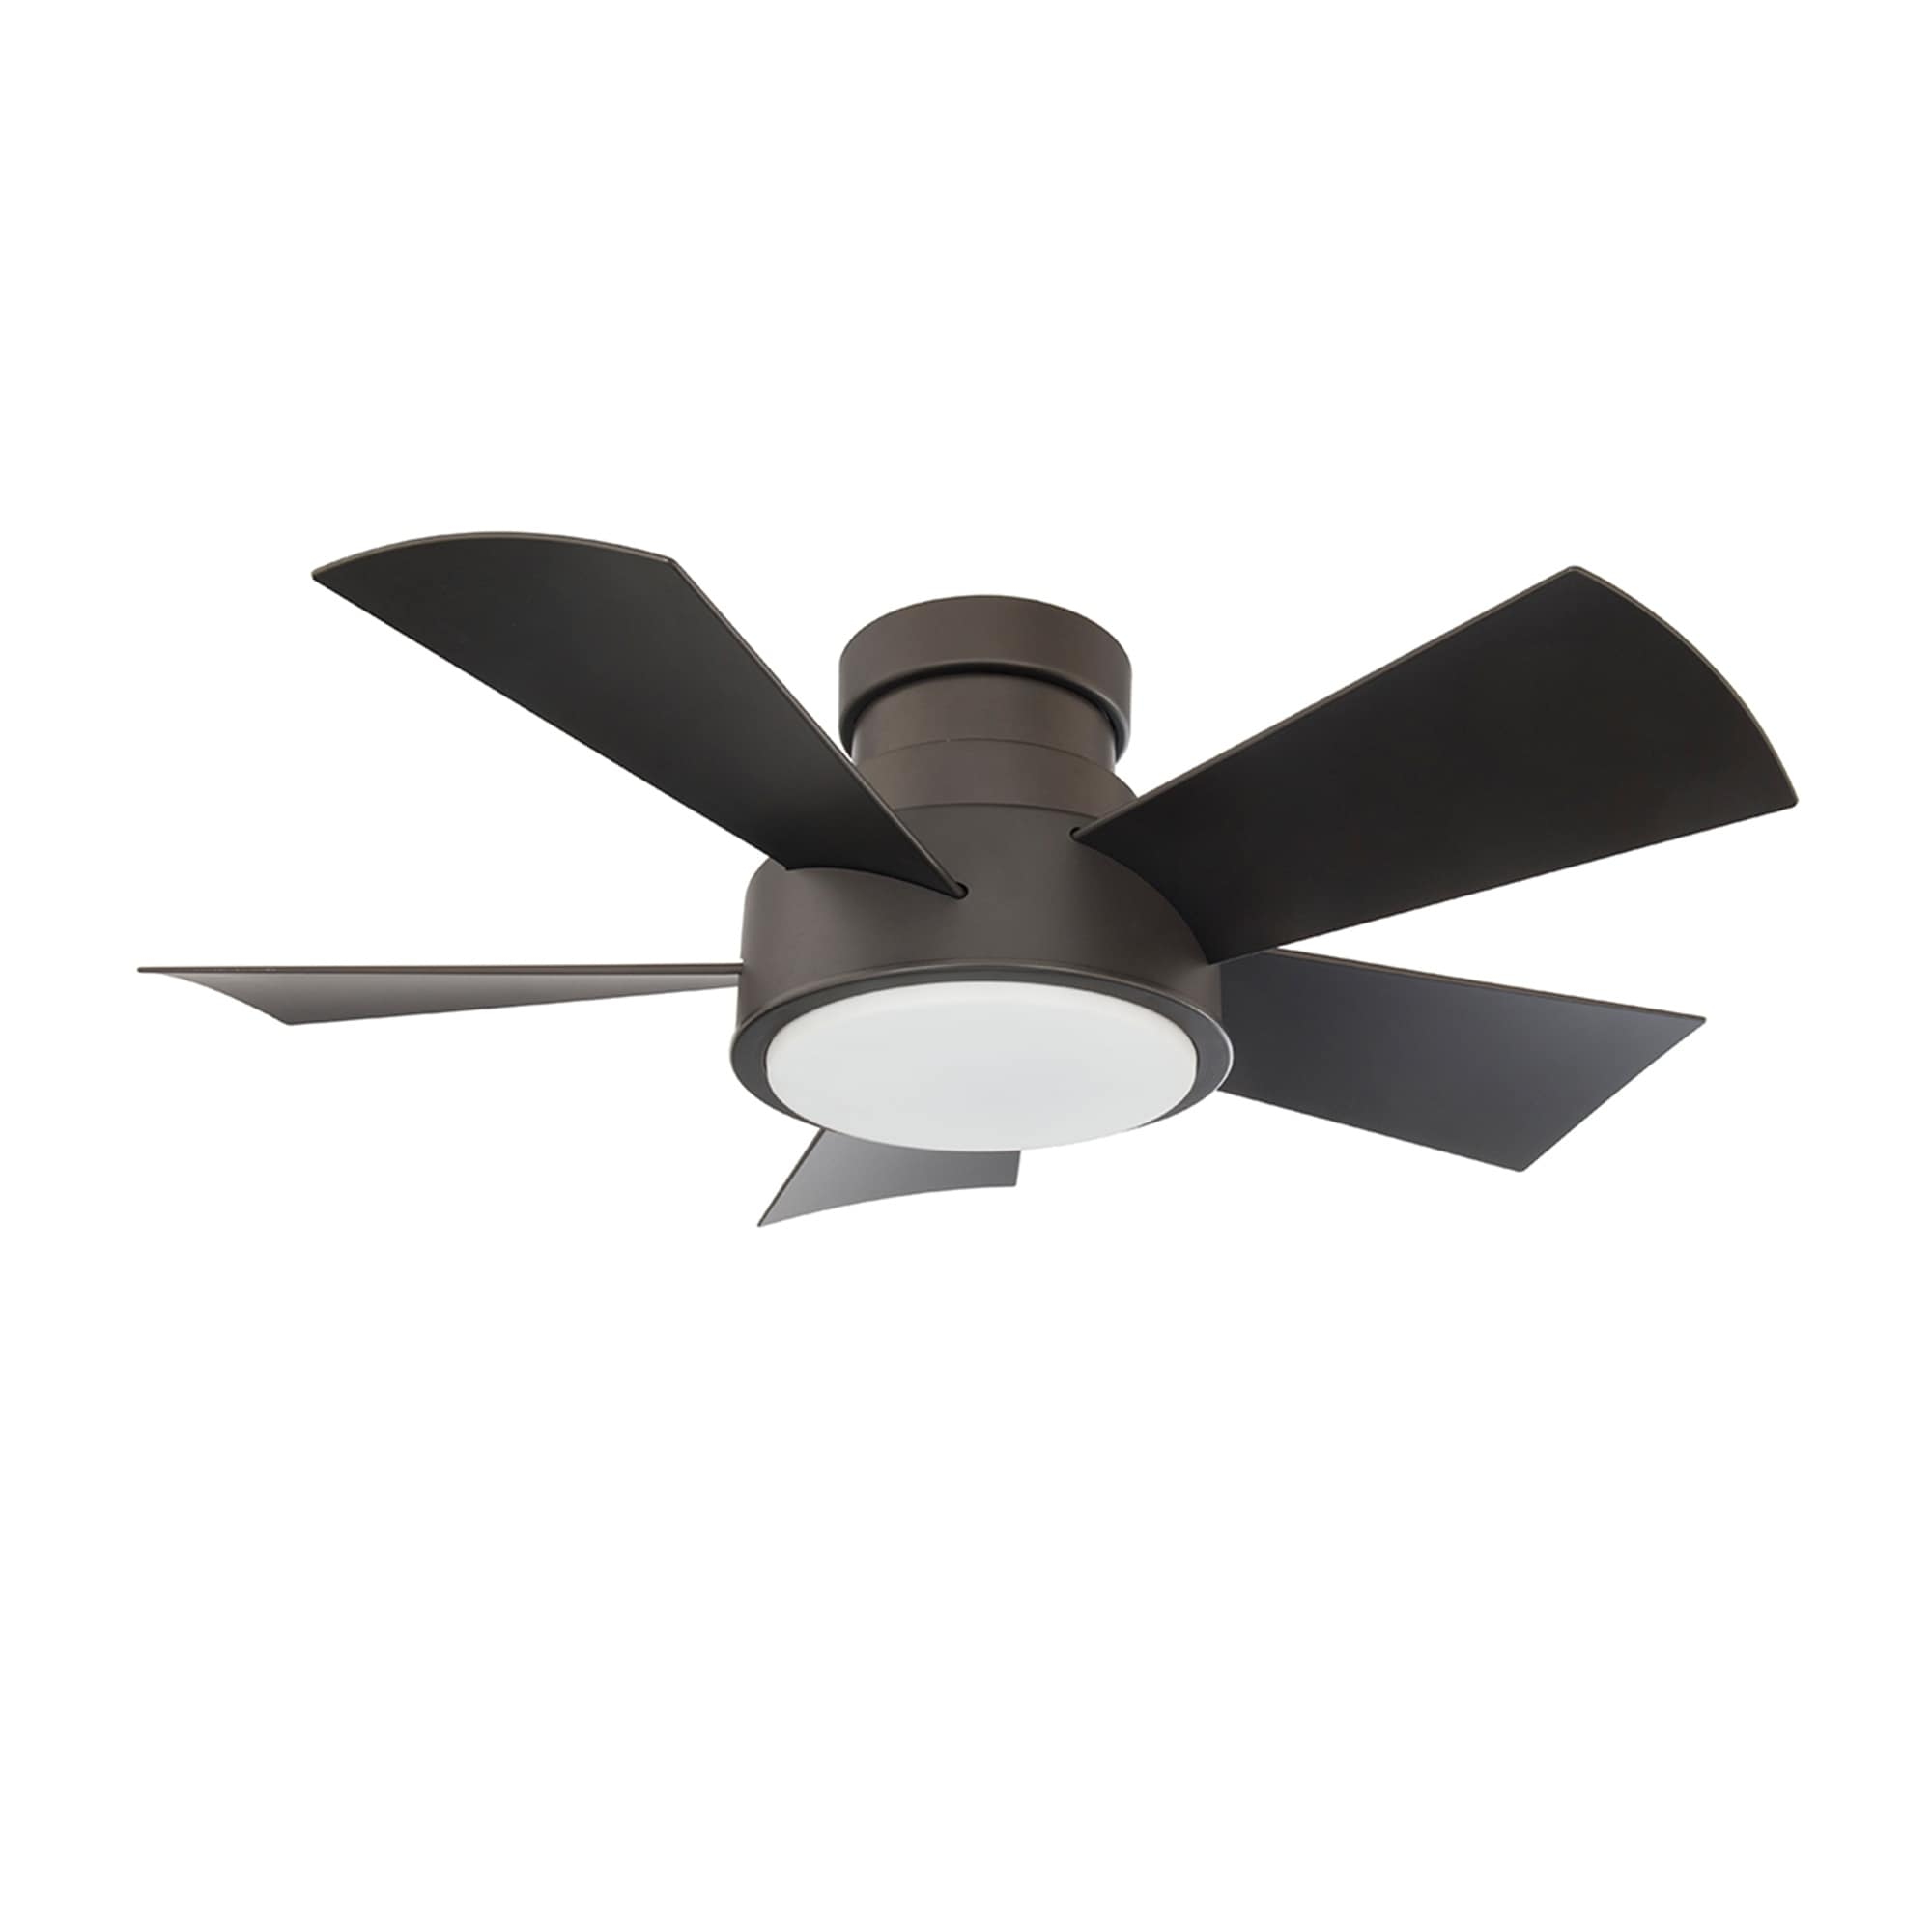 Shop Black Friday Deals On Vox 38 Inch Five Blade Indoor Outdoor Smart Flush Mount Ceiling Fan With Six Speed Dc Motor And Led Light Overstock 25737956